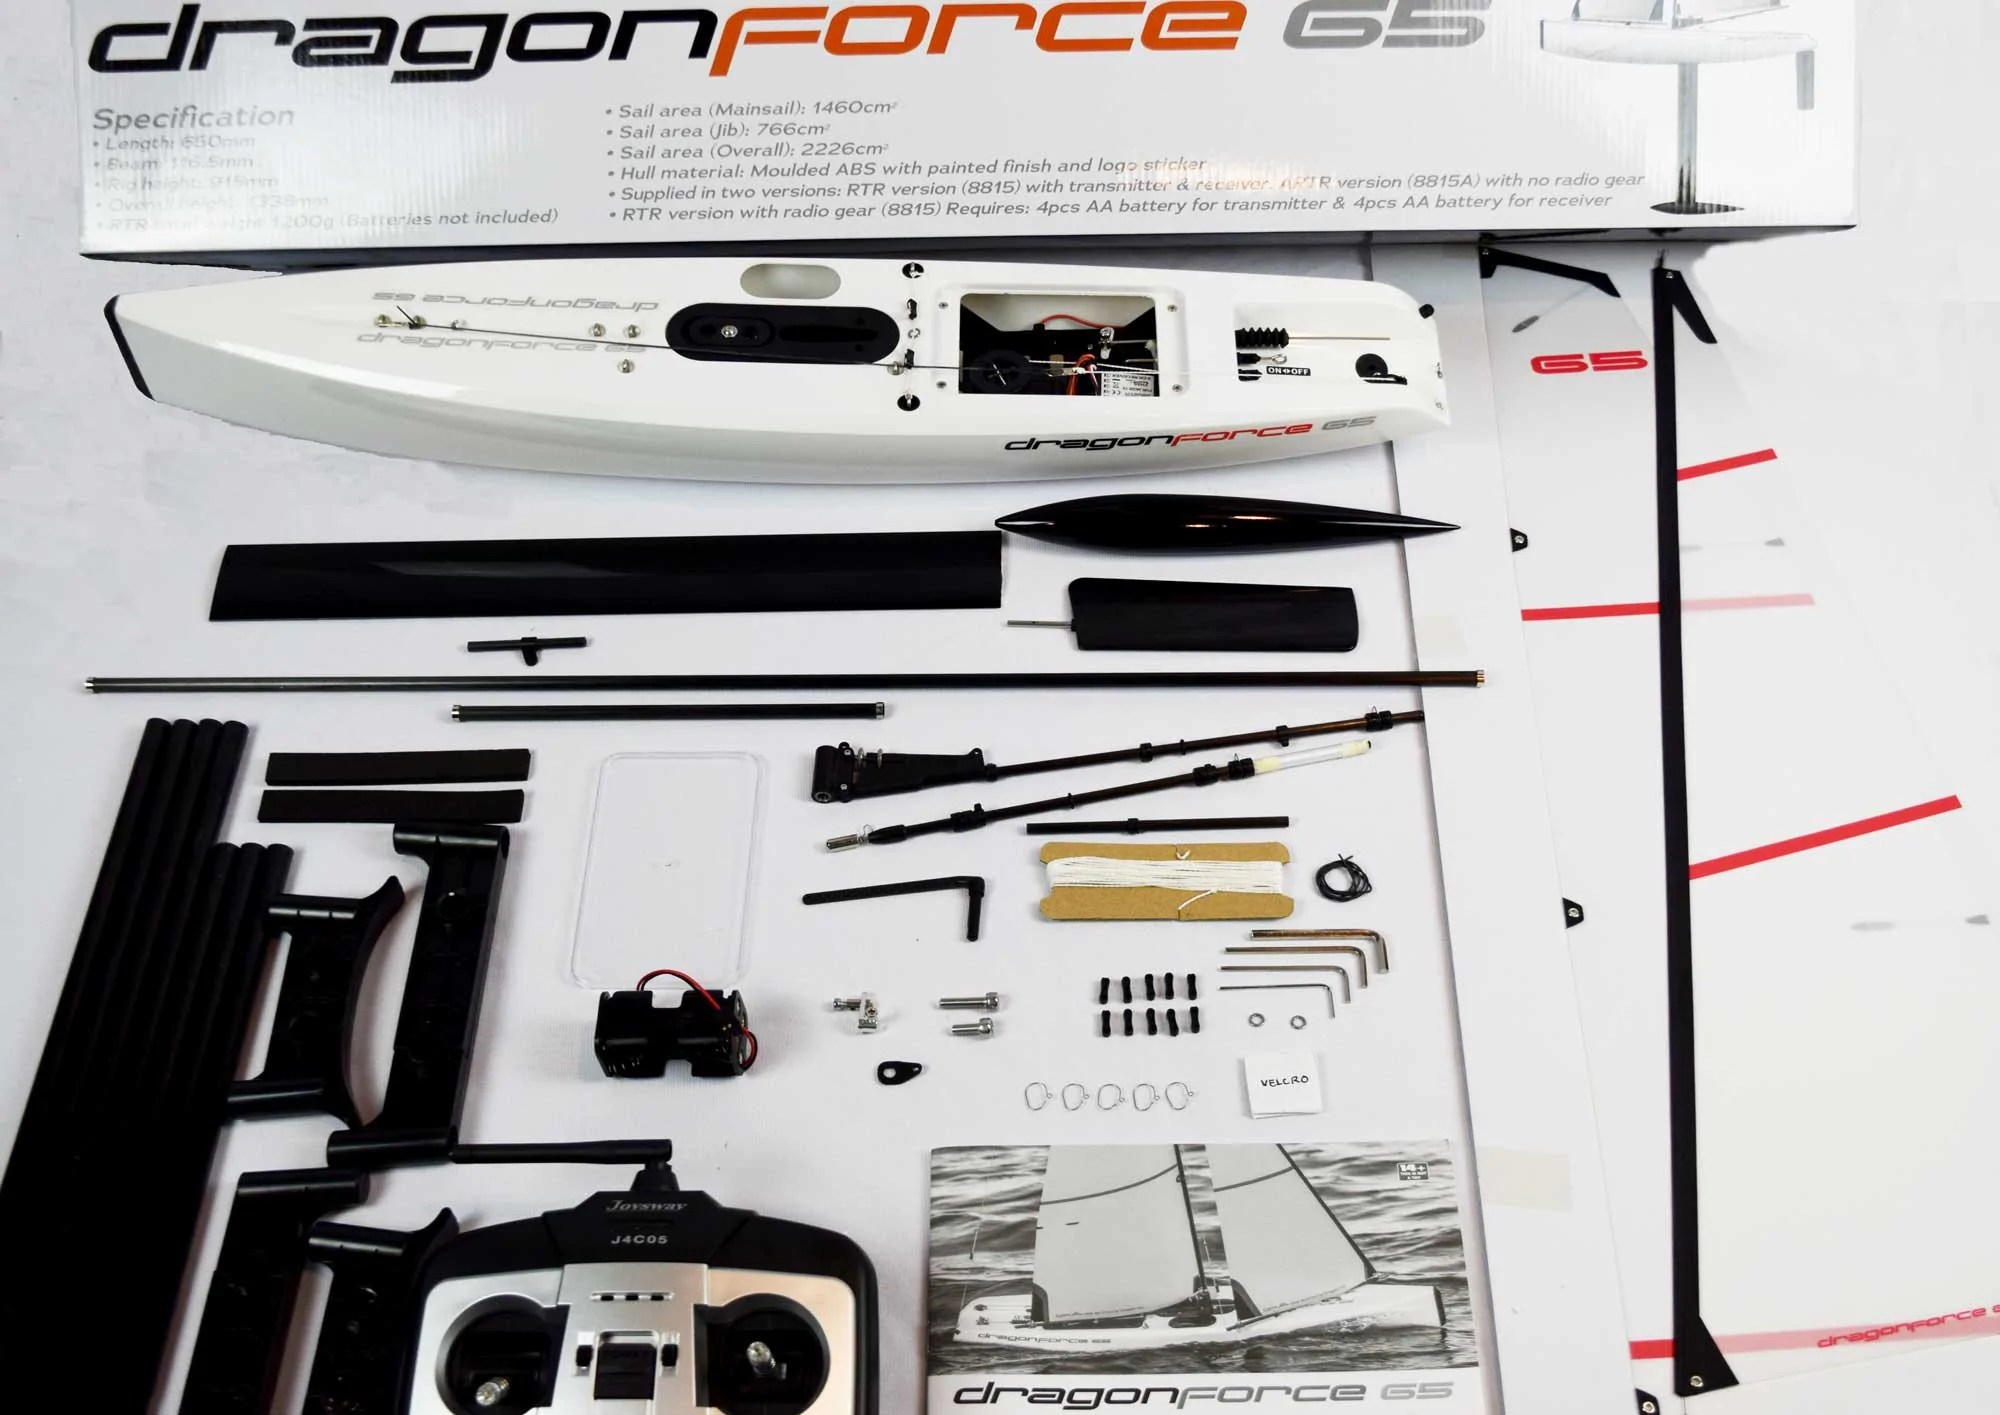 hight resolution of dragonforce 65 2019 version 6 650mm df65 class rc sailboat